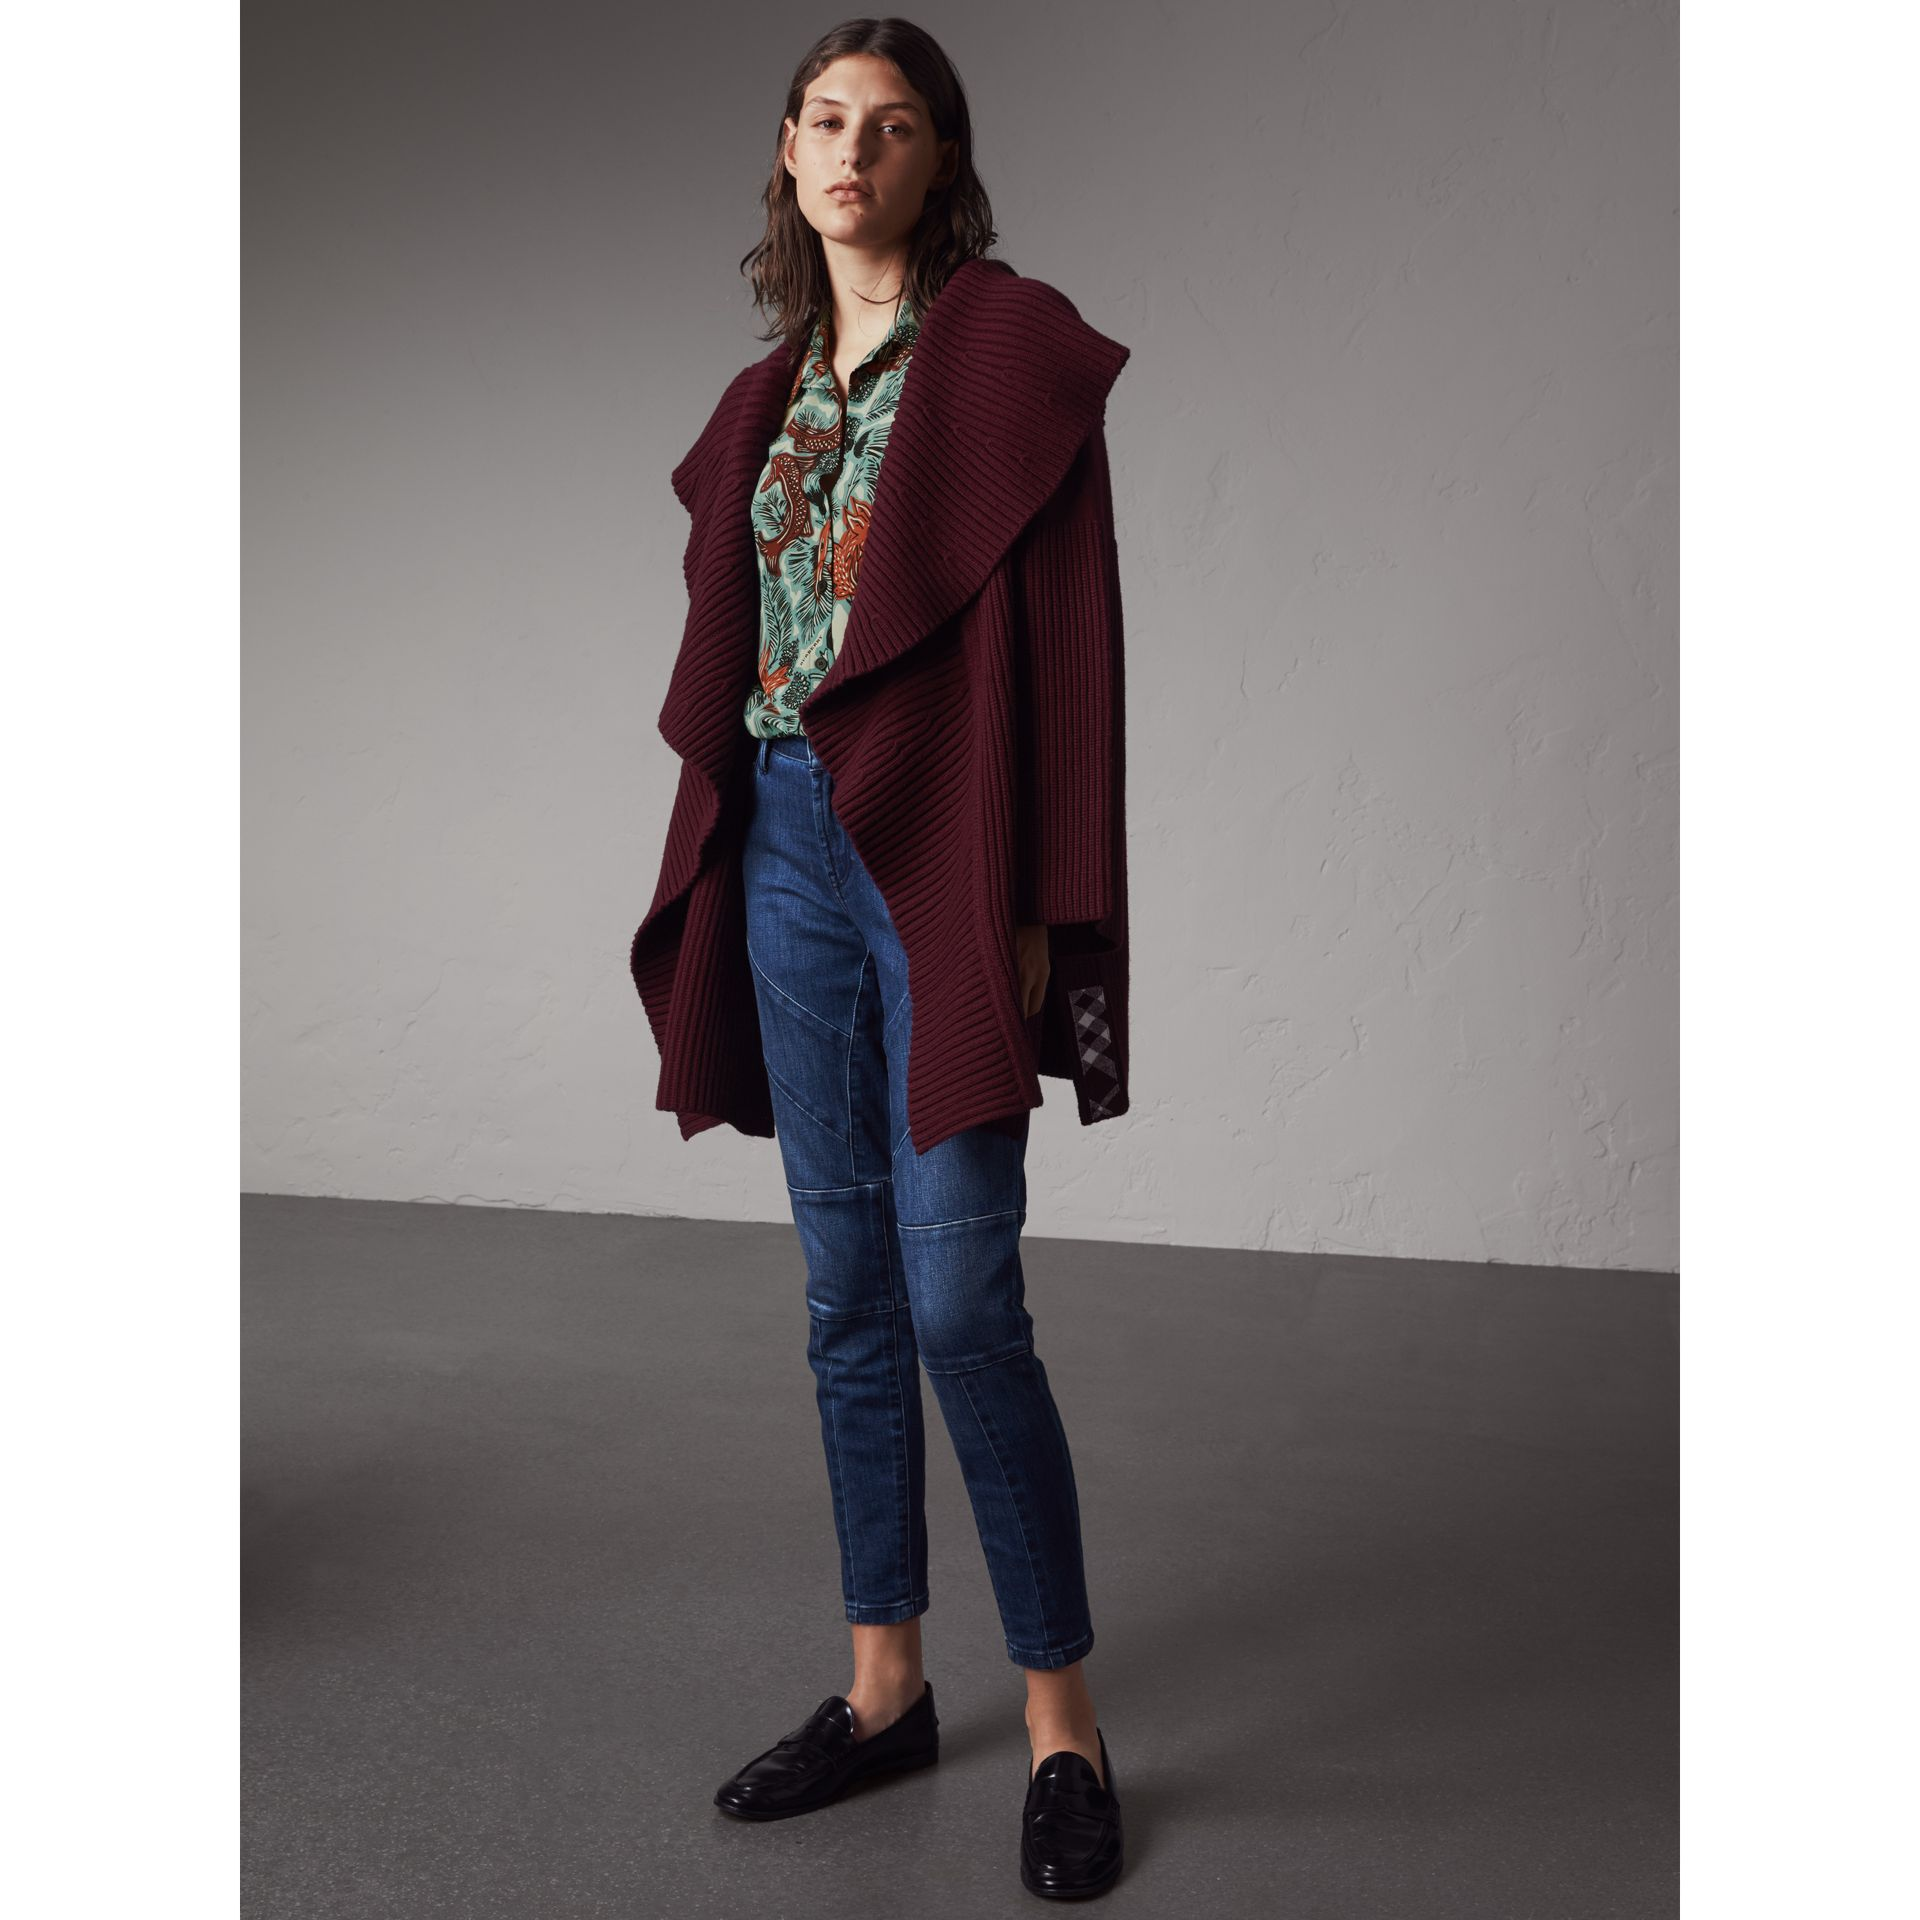 Ribbed Wool Cashmere Cardigan Coat in Burgundy - Women | Burberry - gallery image 4